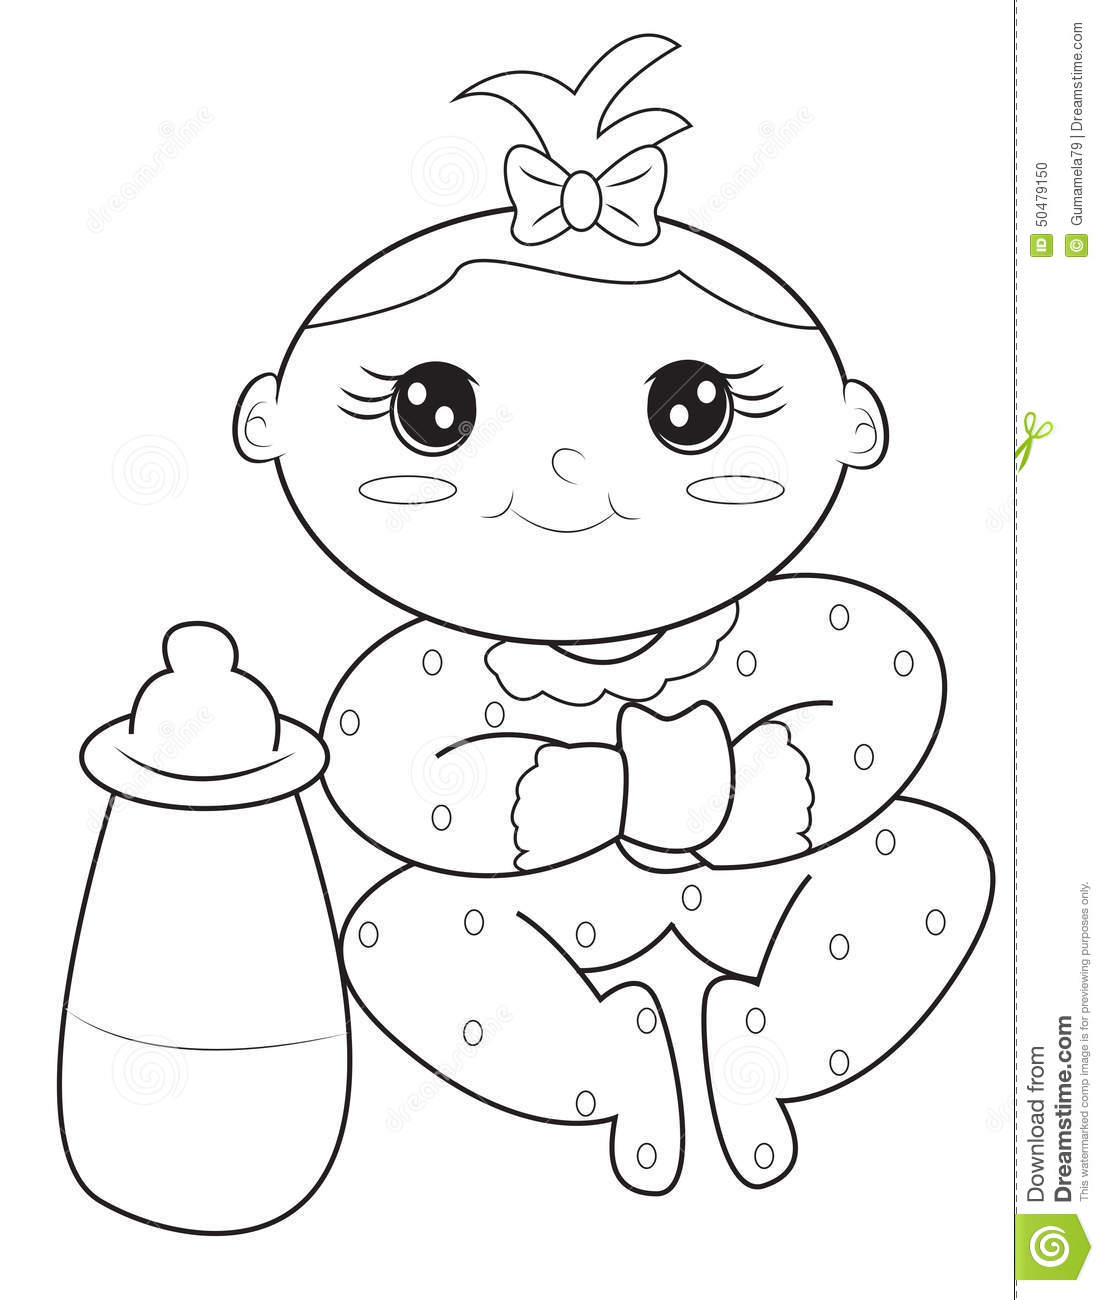 American Girl Doll Coloring Pages | American girl doll printables ... | 1300x1104